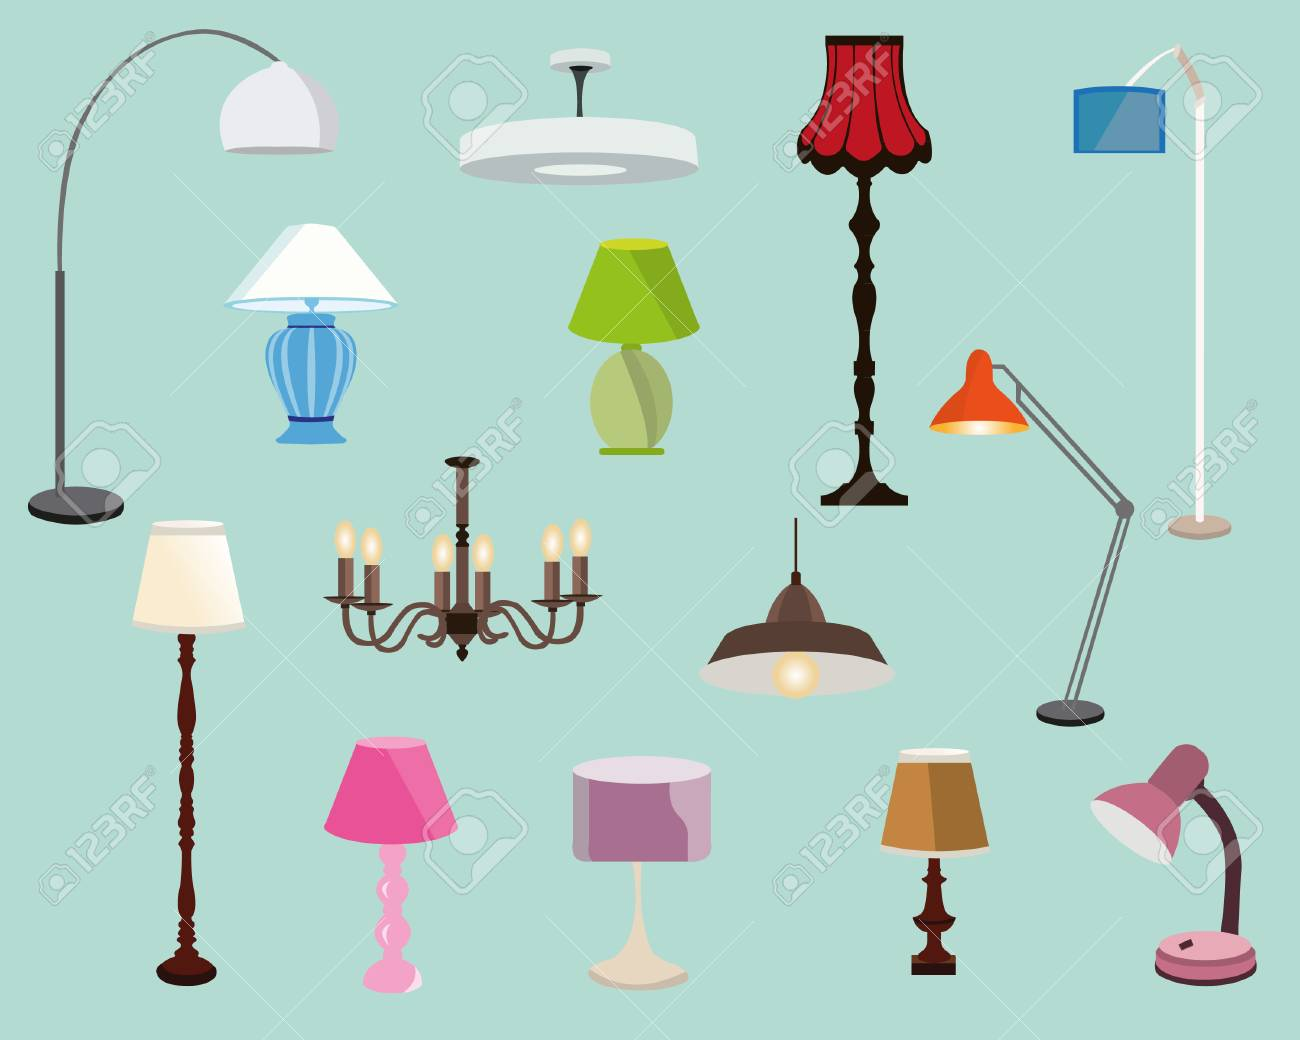 Colorful lamps set floor lamps table lamps and chandeliersflat colorful lamps set floor lamps table lamps and chandeliersflat style vector illustration mozeypictures Images